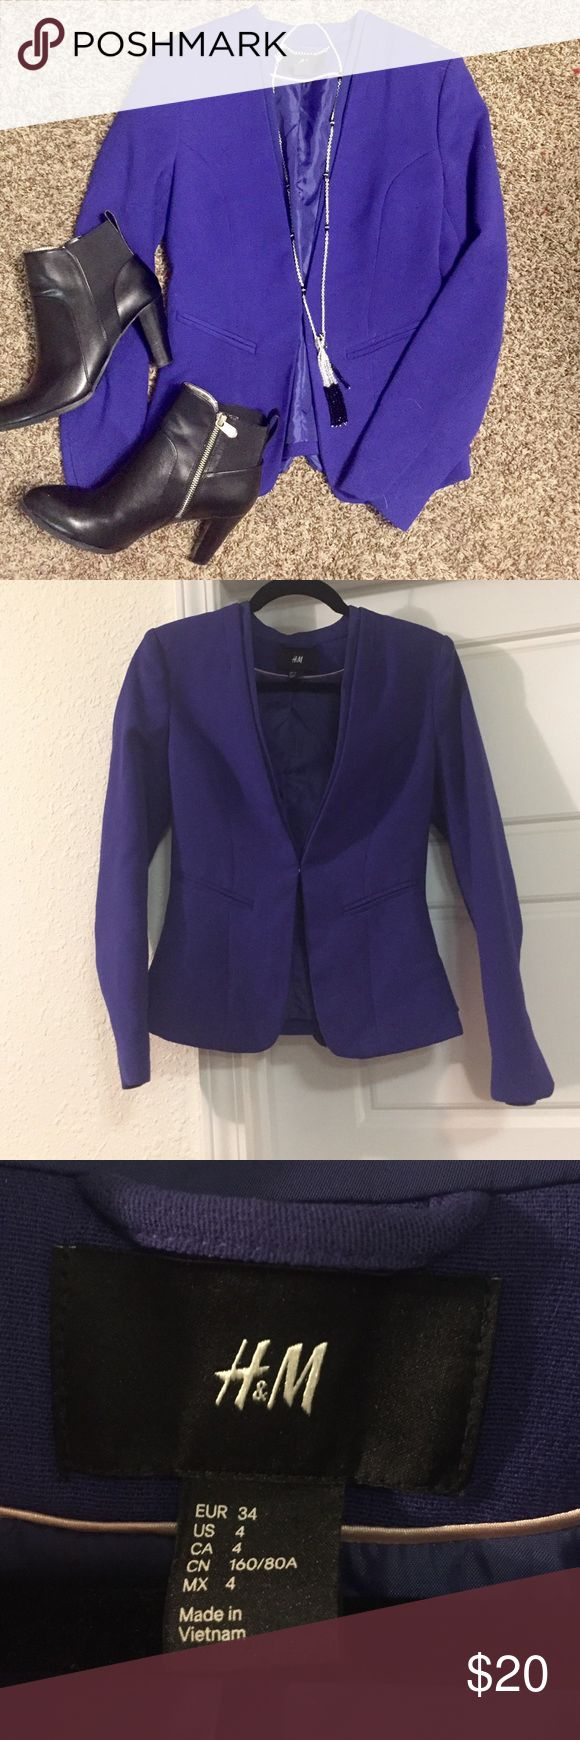 H&M Cobalt Blazer OBSESSED! This blazer is in perfect condition and looks amazing on! It is a US size 4! Please let me know if you have any questions! :) H&M Jackets & Coats Blazers